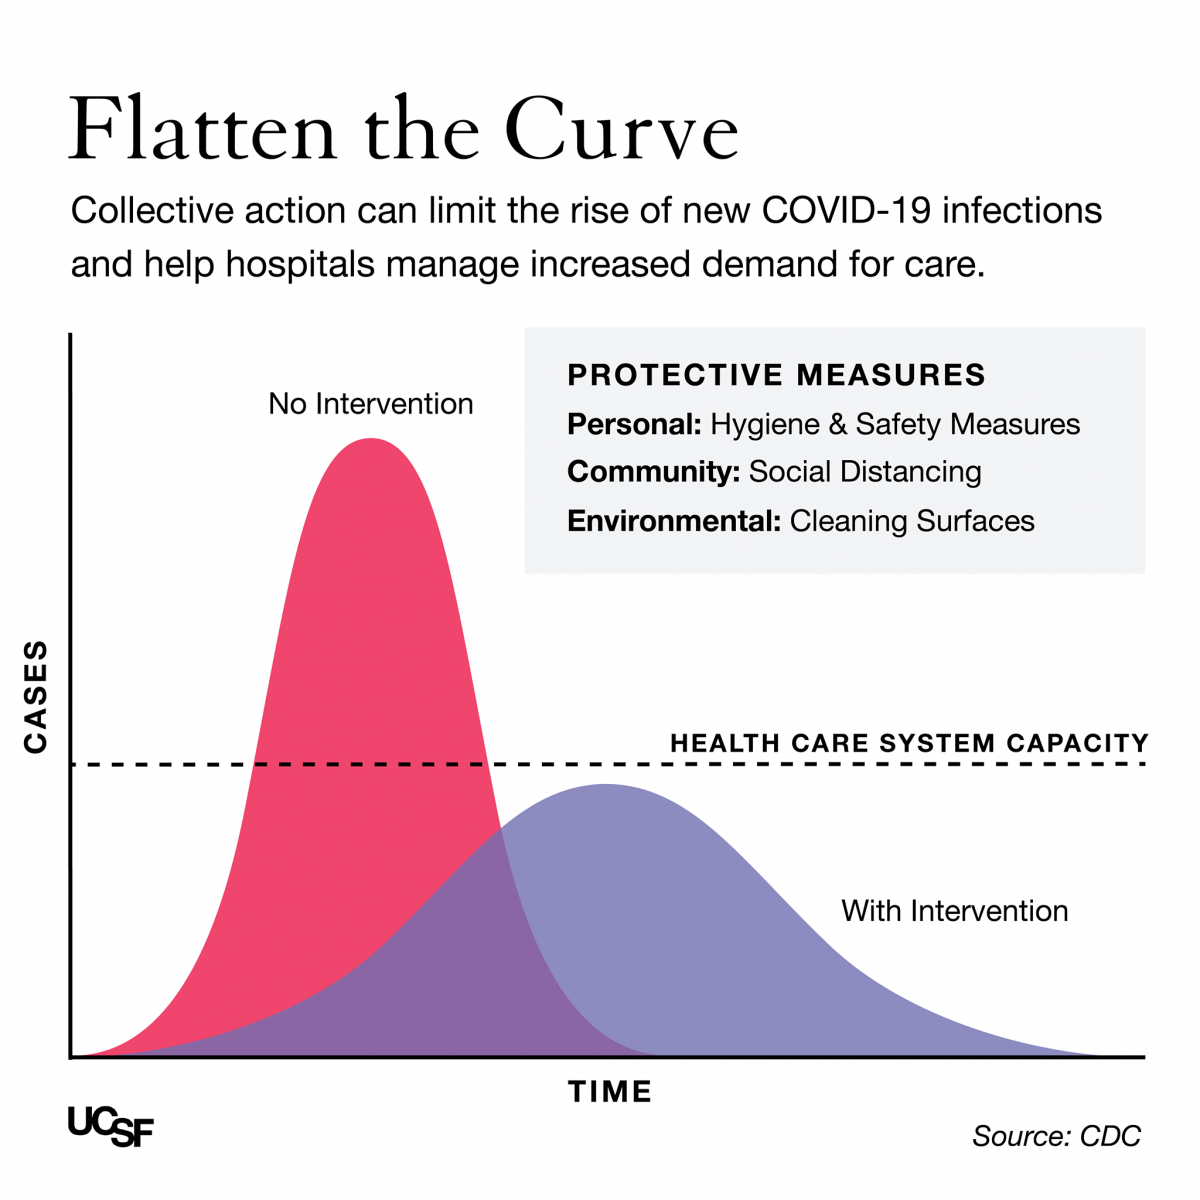 UCSF Flatten the Curve infographic